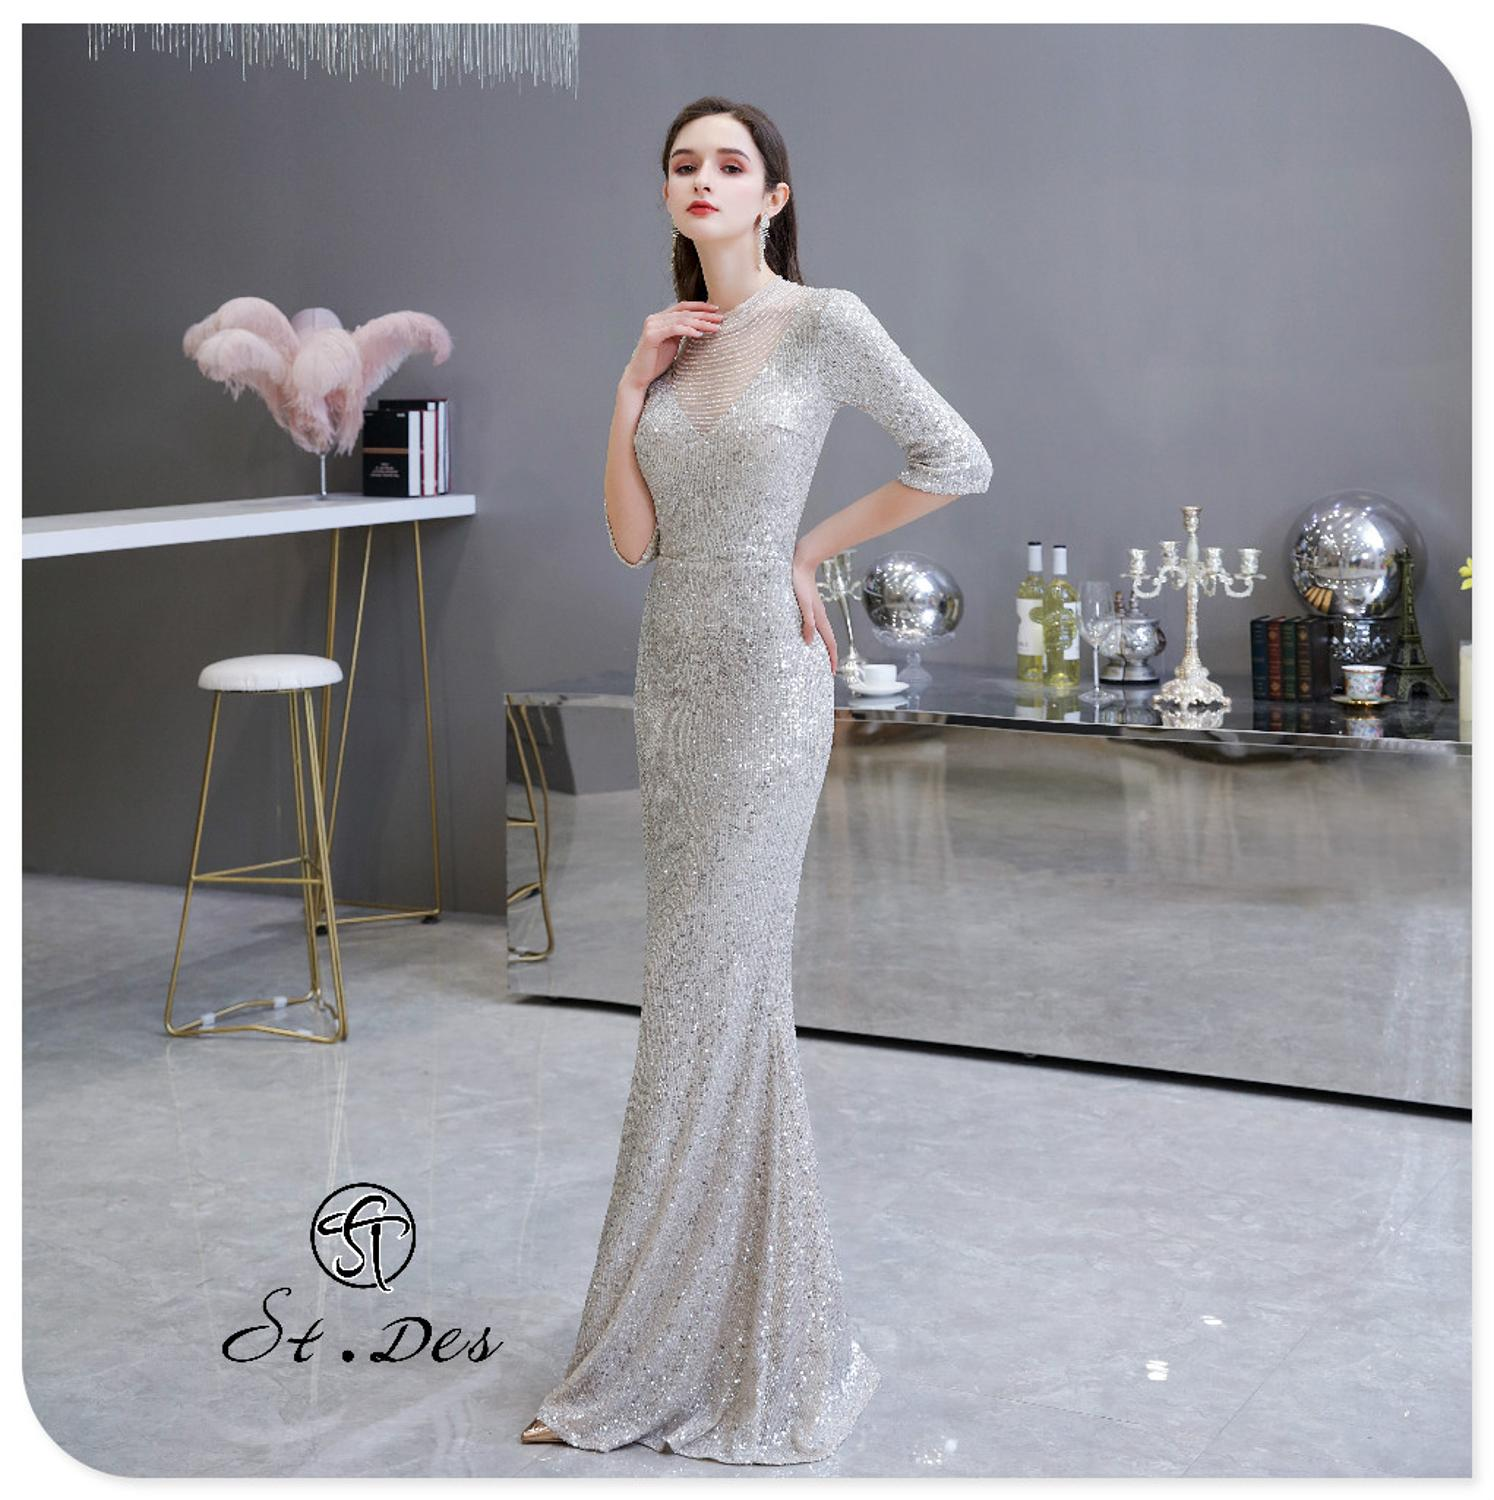 S.T.DES Evening Dress 2020 New Arrival Sliver Beading Mermaid Round Neck Long Sleeve Floor Length Party Dress Dinner Gowns